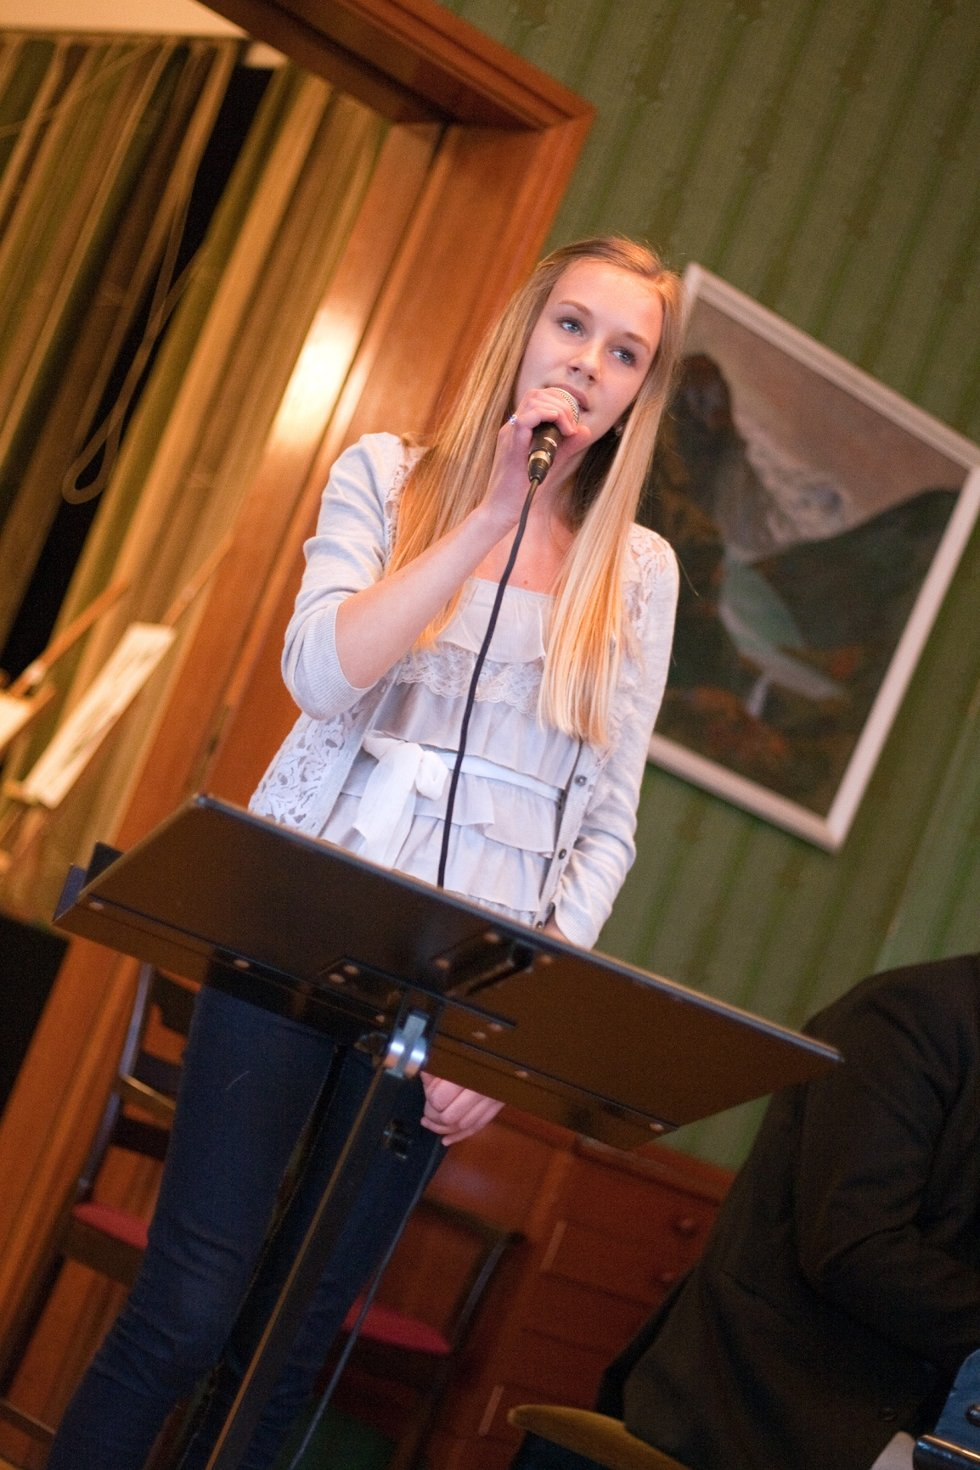 Fra Rømskog; Louise Jansson (14) er nominert for sang.